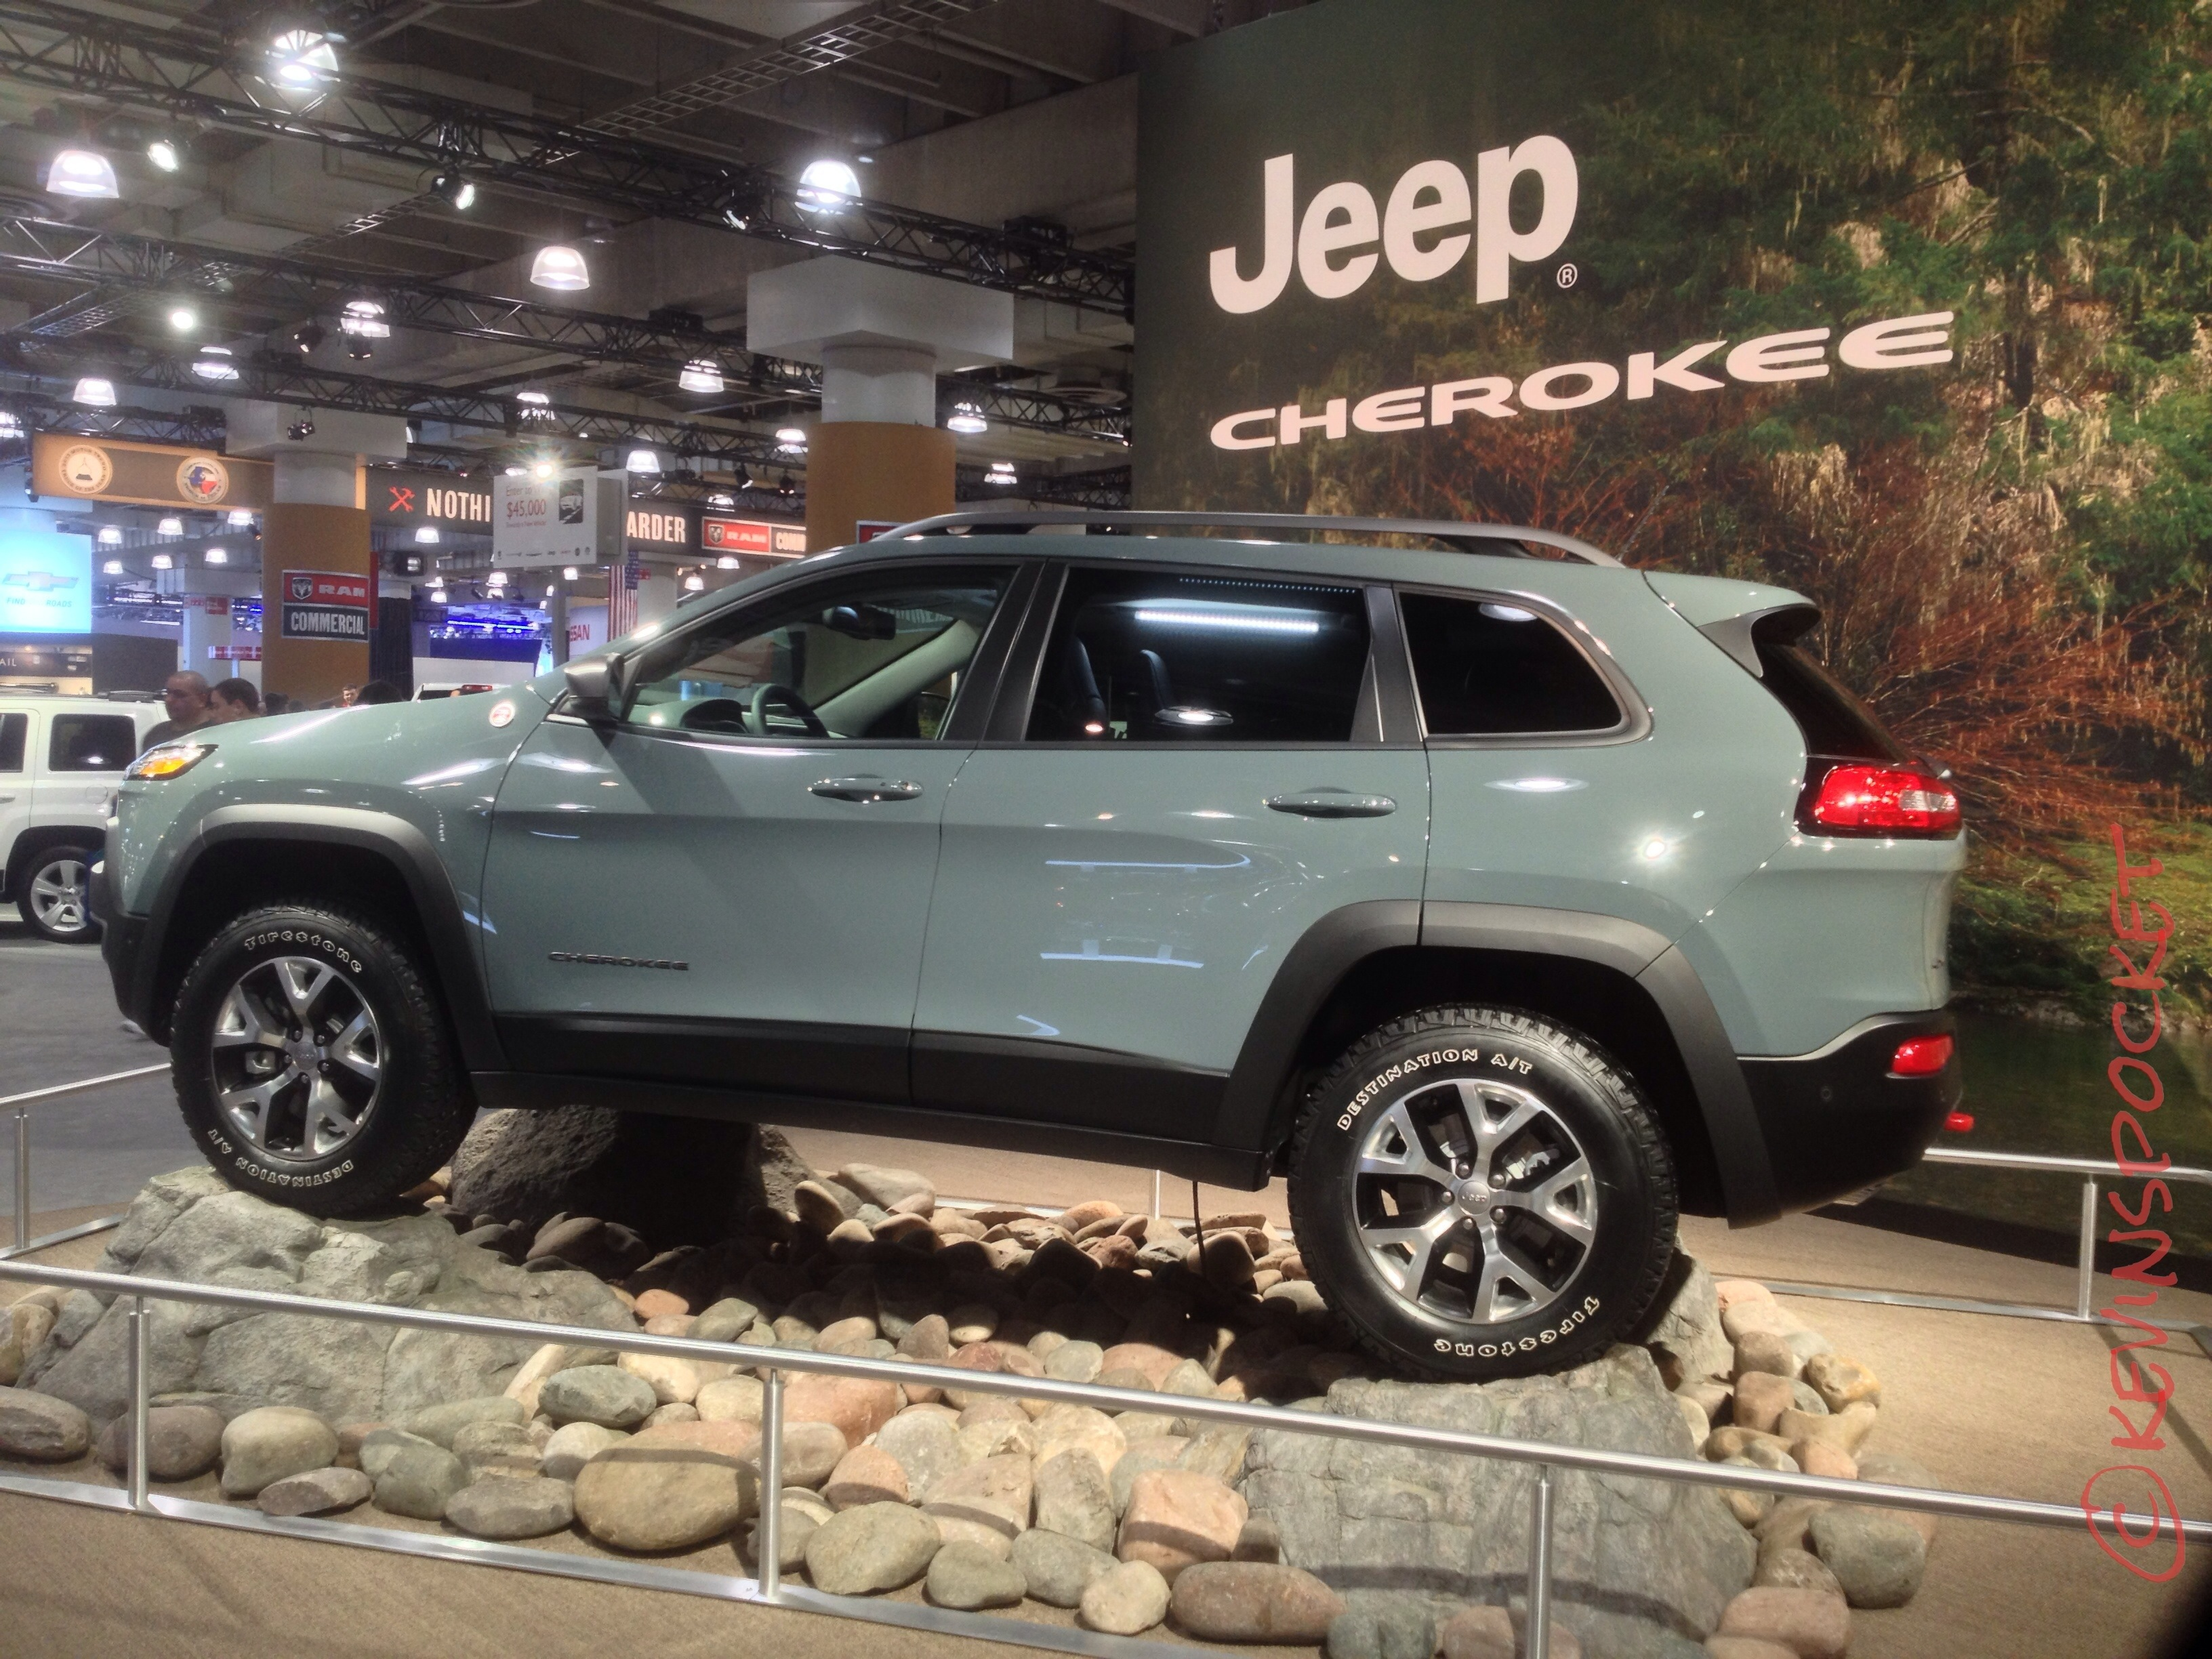 2014 jeep cherokee trailhawk kevinspocket. Black Bedroom Furniture Sets. Home Design Ideas